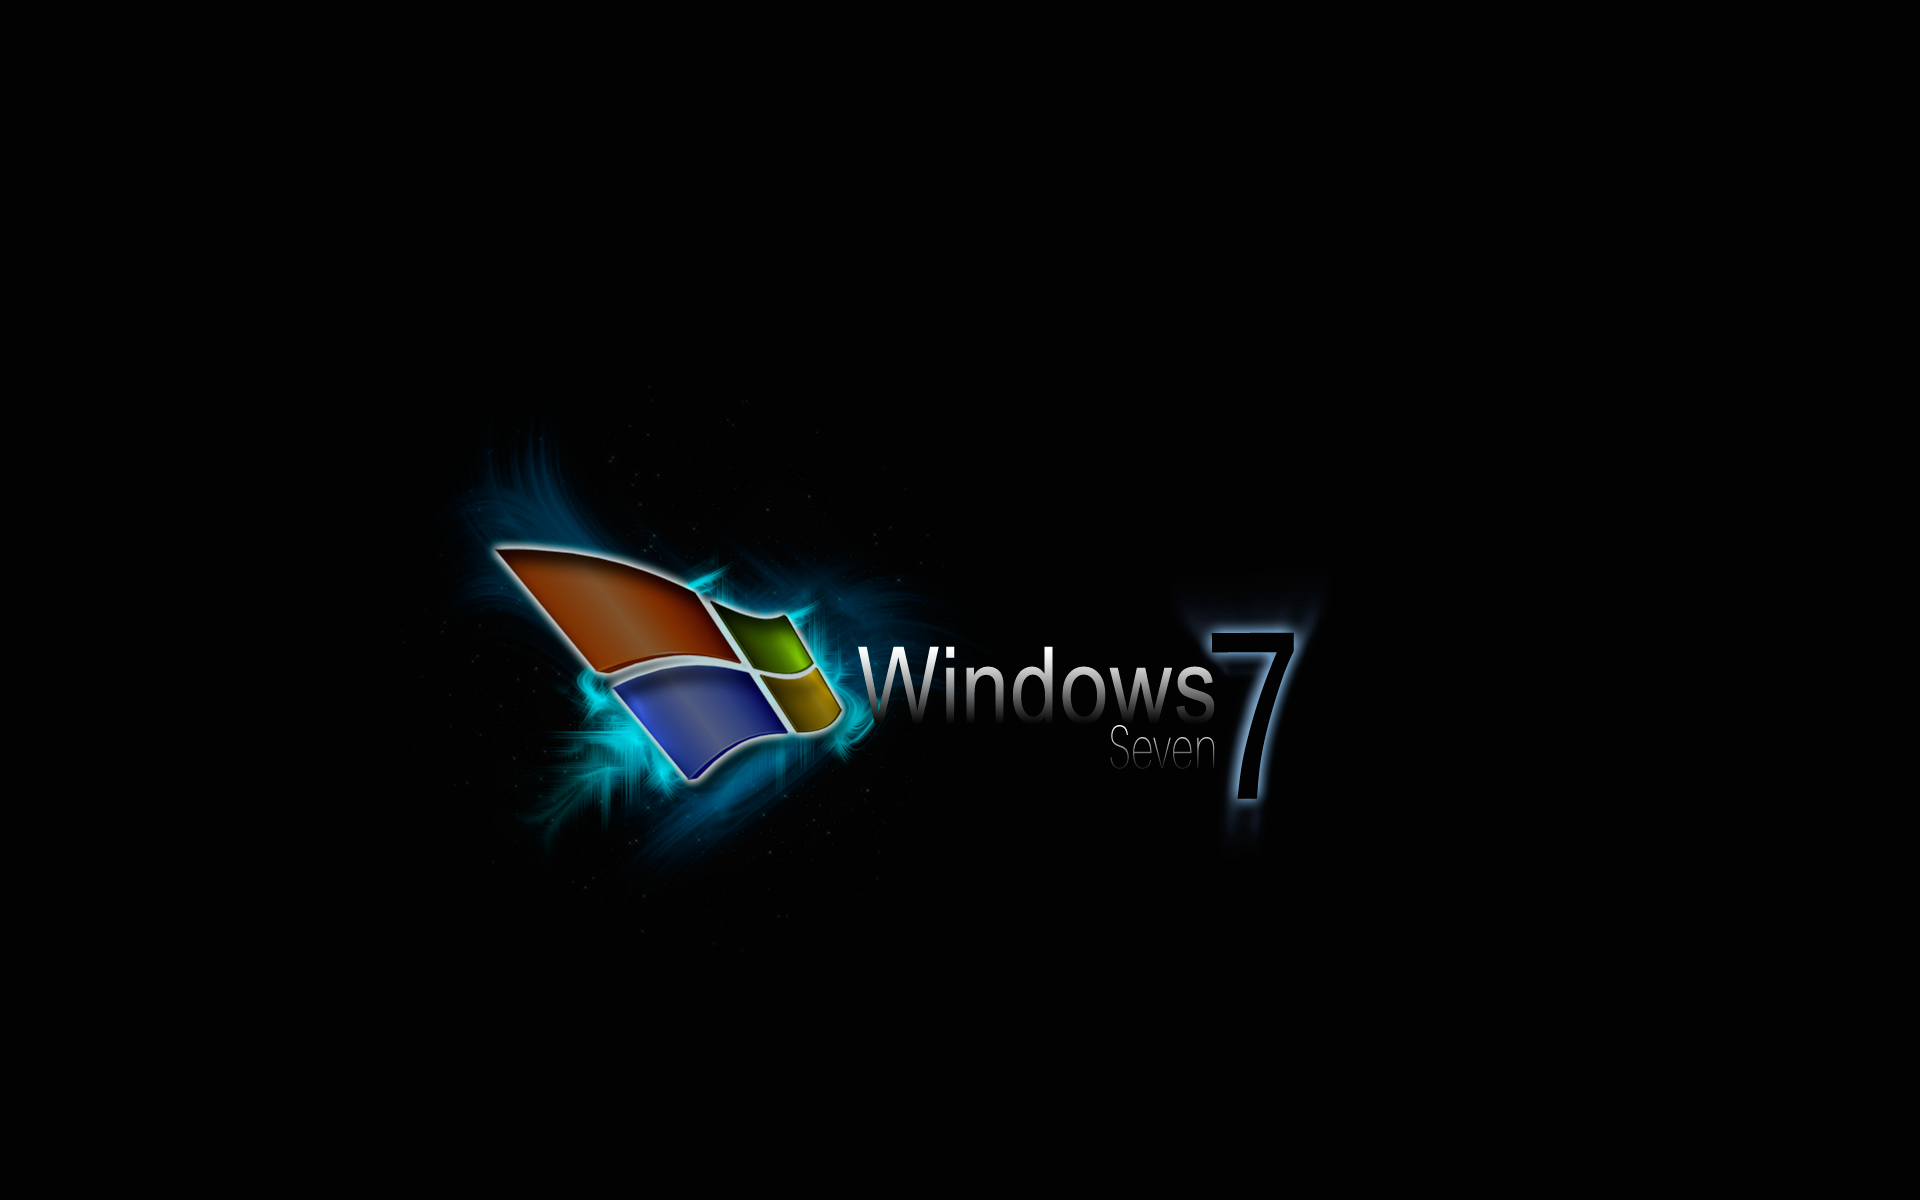 Windows Seven 7 Wide HD 405.37 Kb